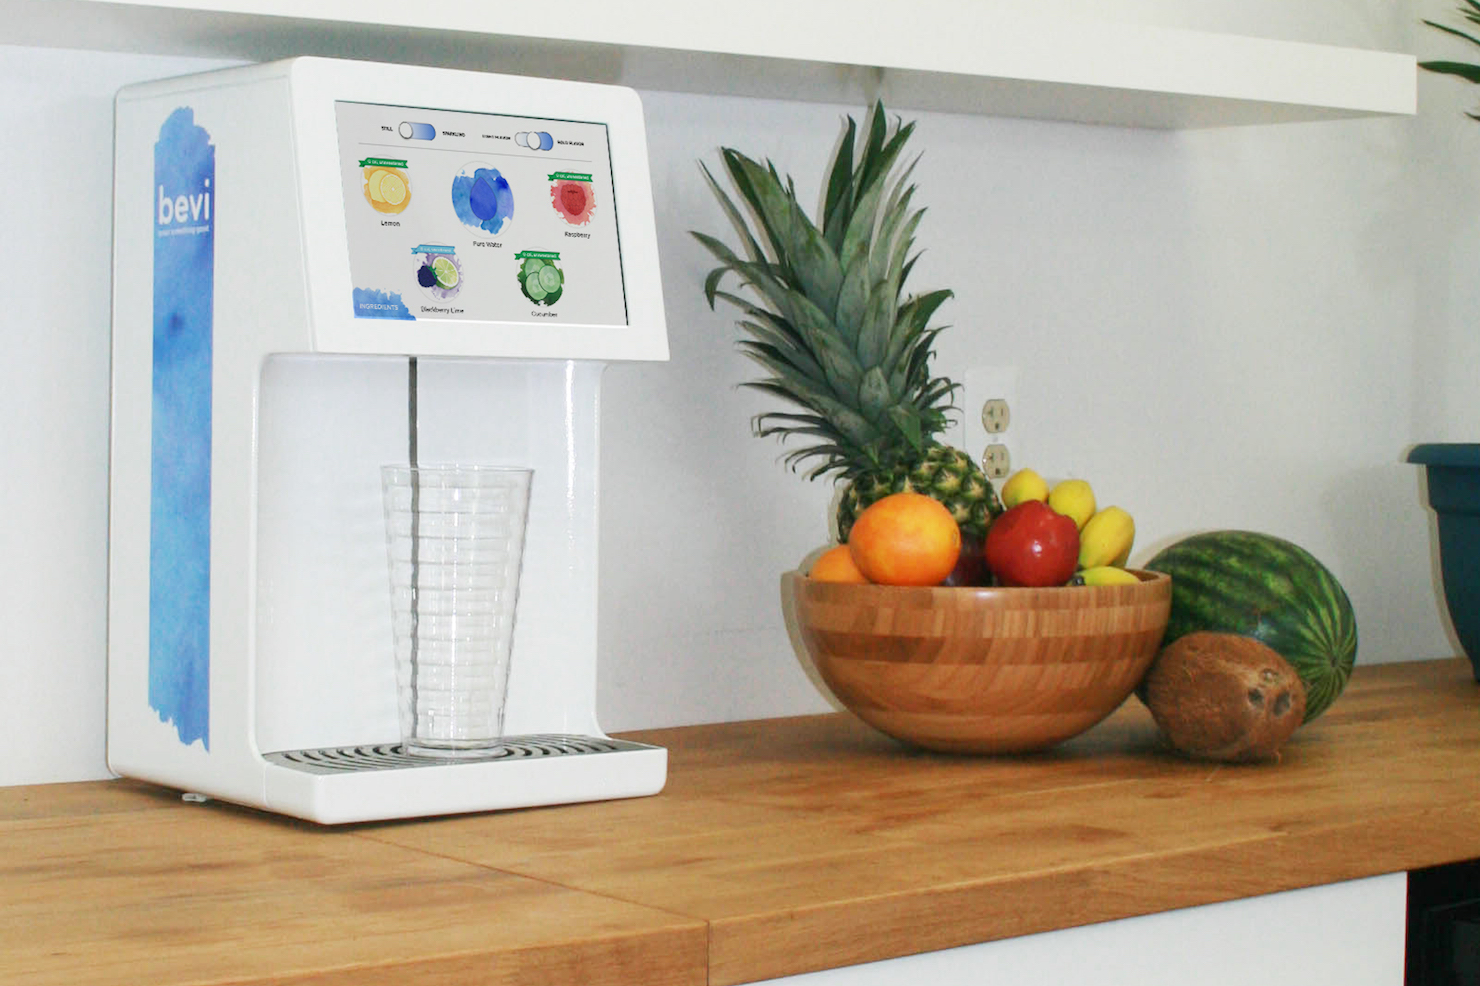 Countertop Bevi Smart Water Cooler